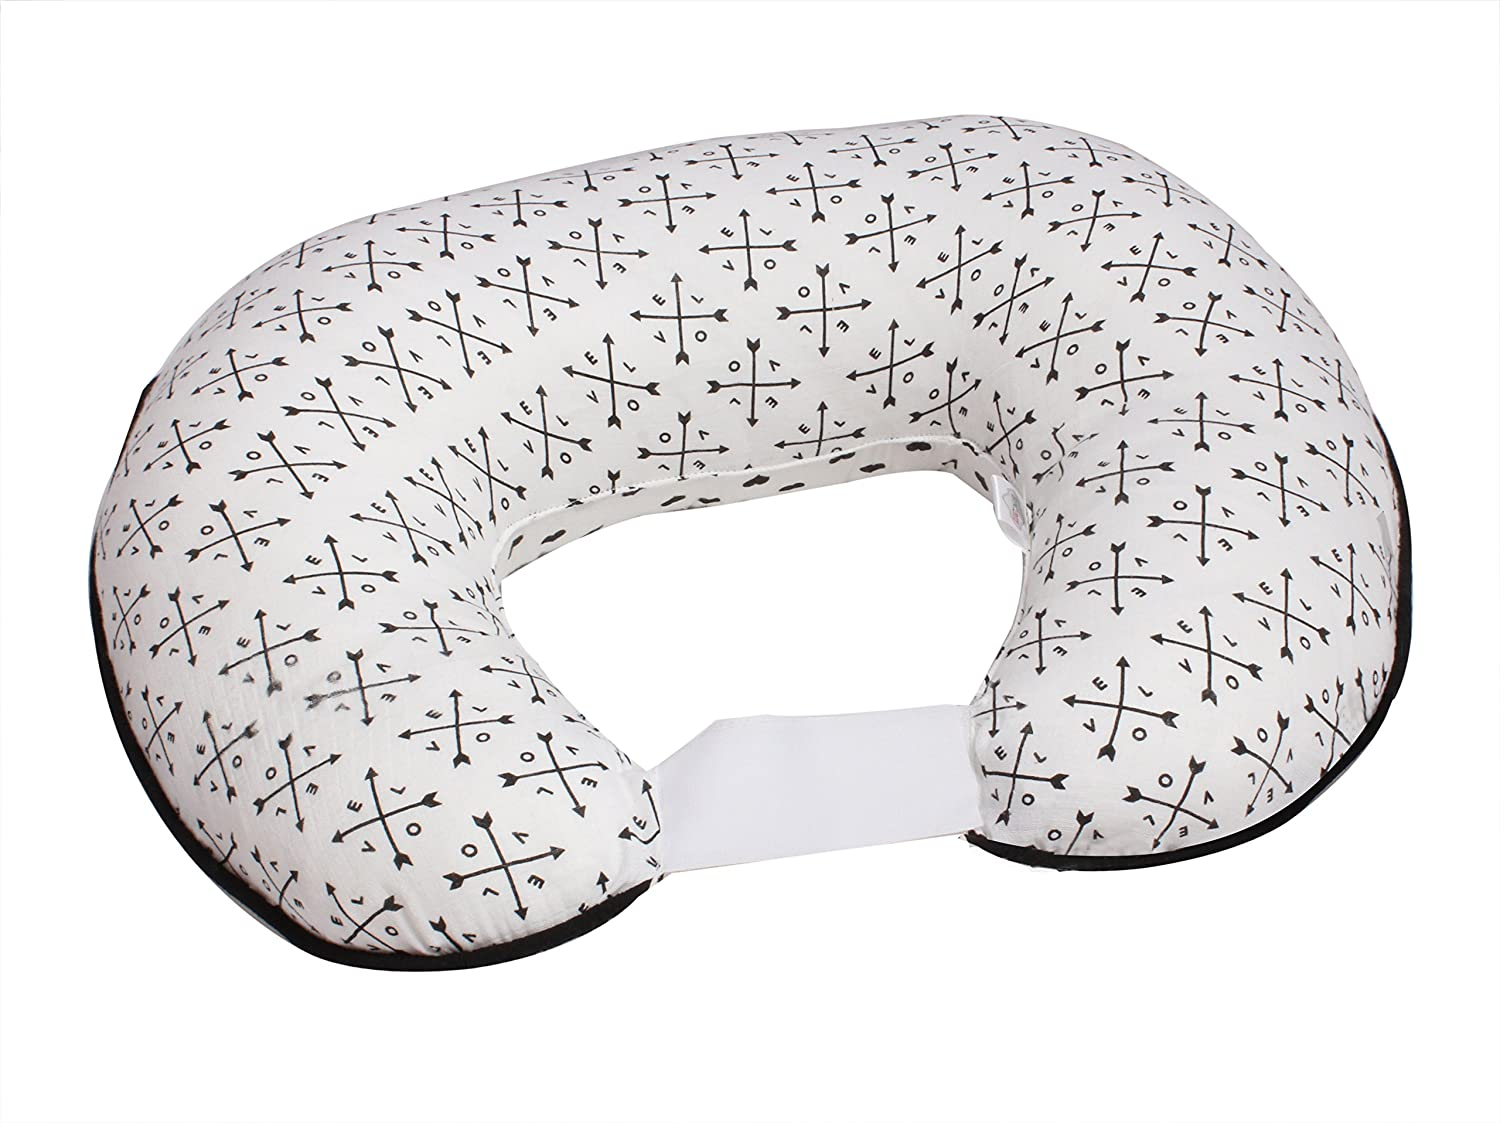 Bacati - 100 Percent Cotton Muslin (Nursing Pillow Cover Only, Black Love/Arrows/Hearts)